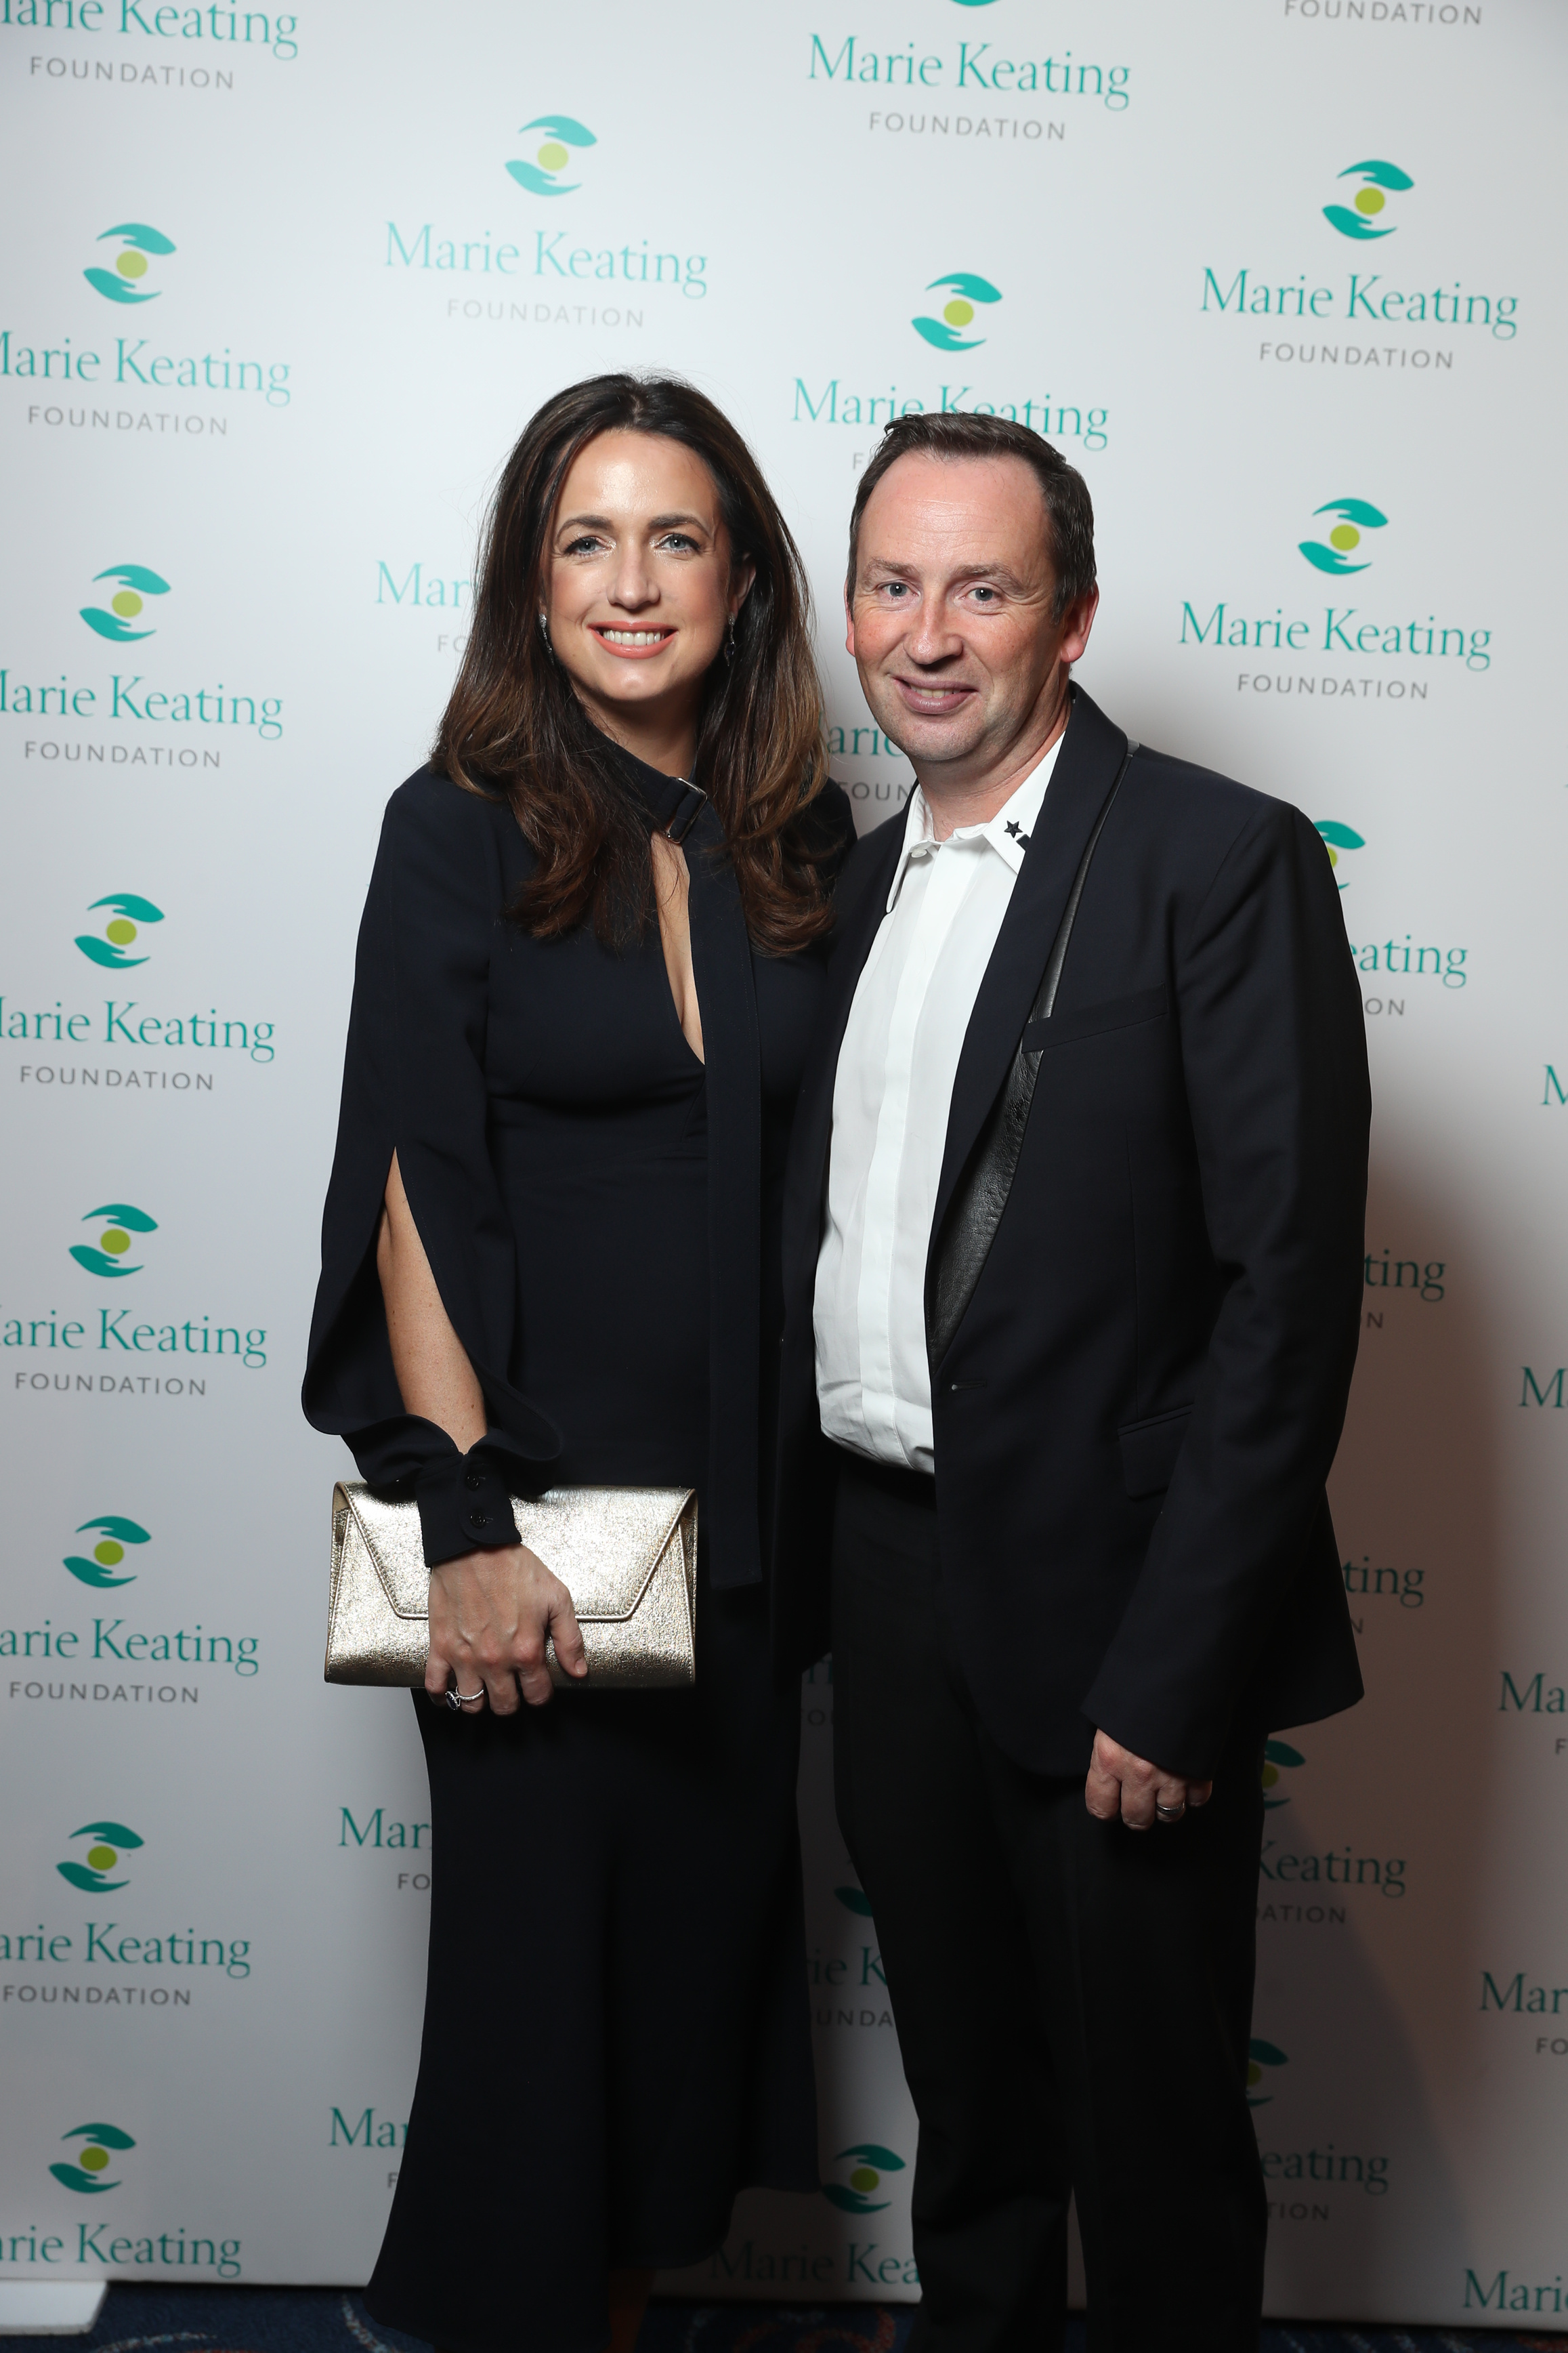 Ramona Nicholas and Canice Nicholas at the Marie Keating Foundation Celebrity Golf Classic. Picture: Jason Clarke